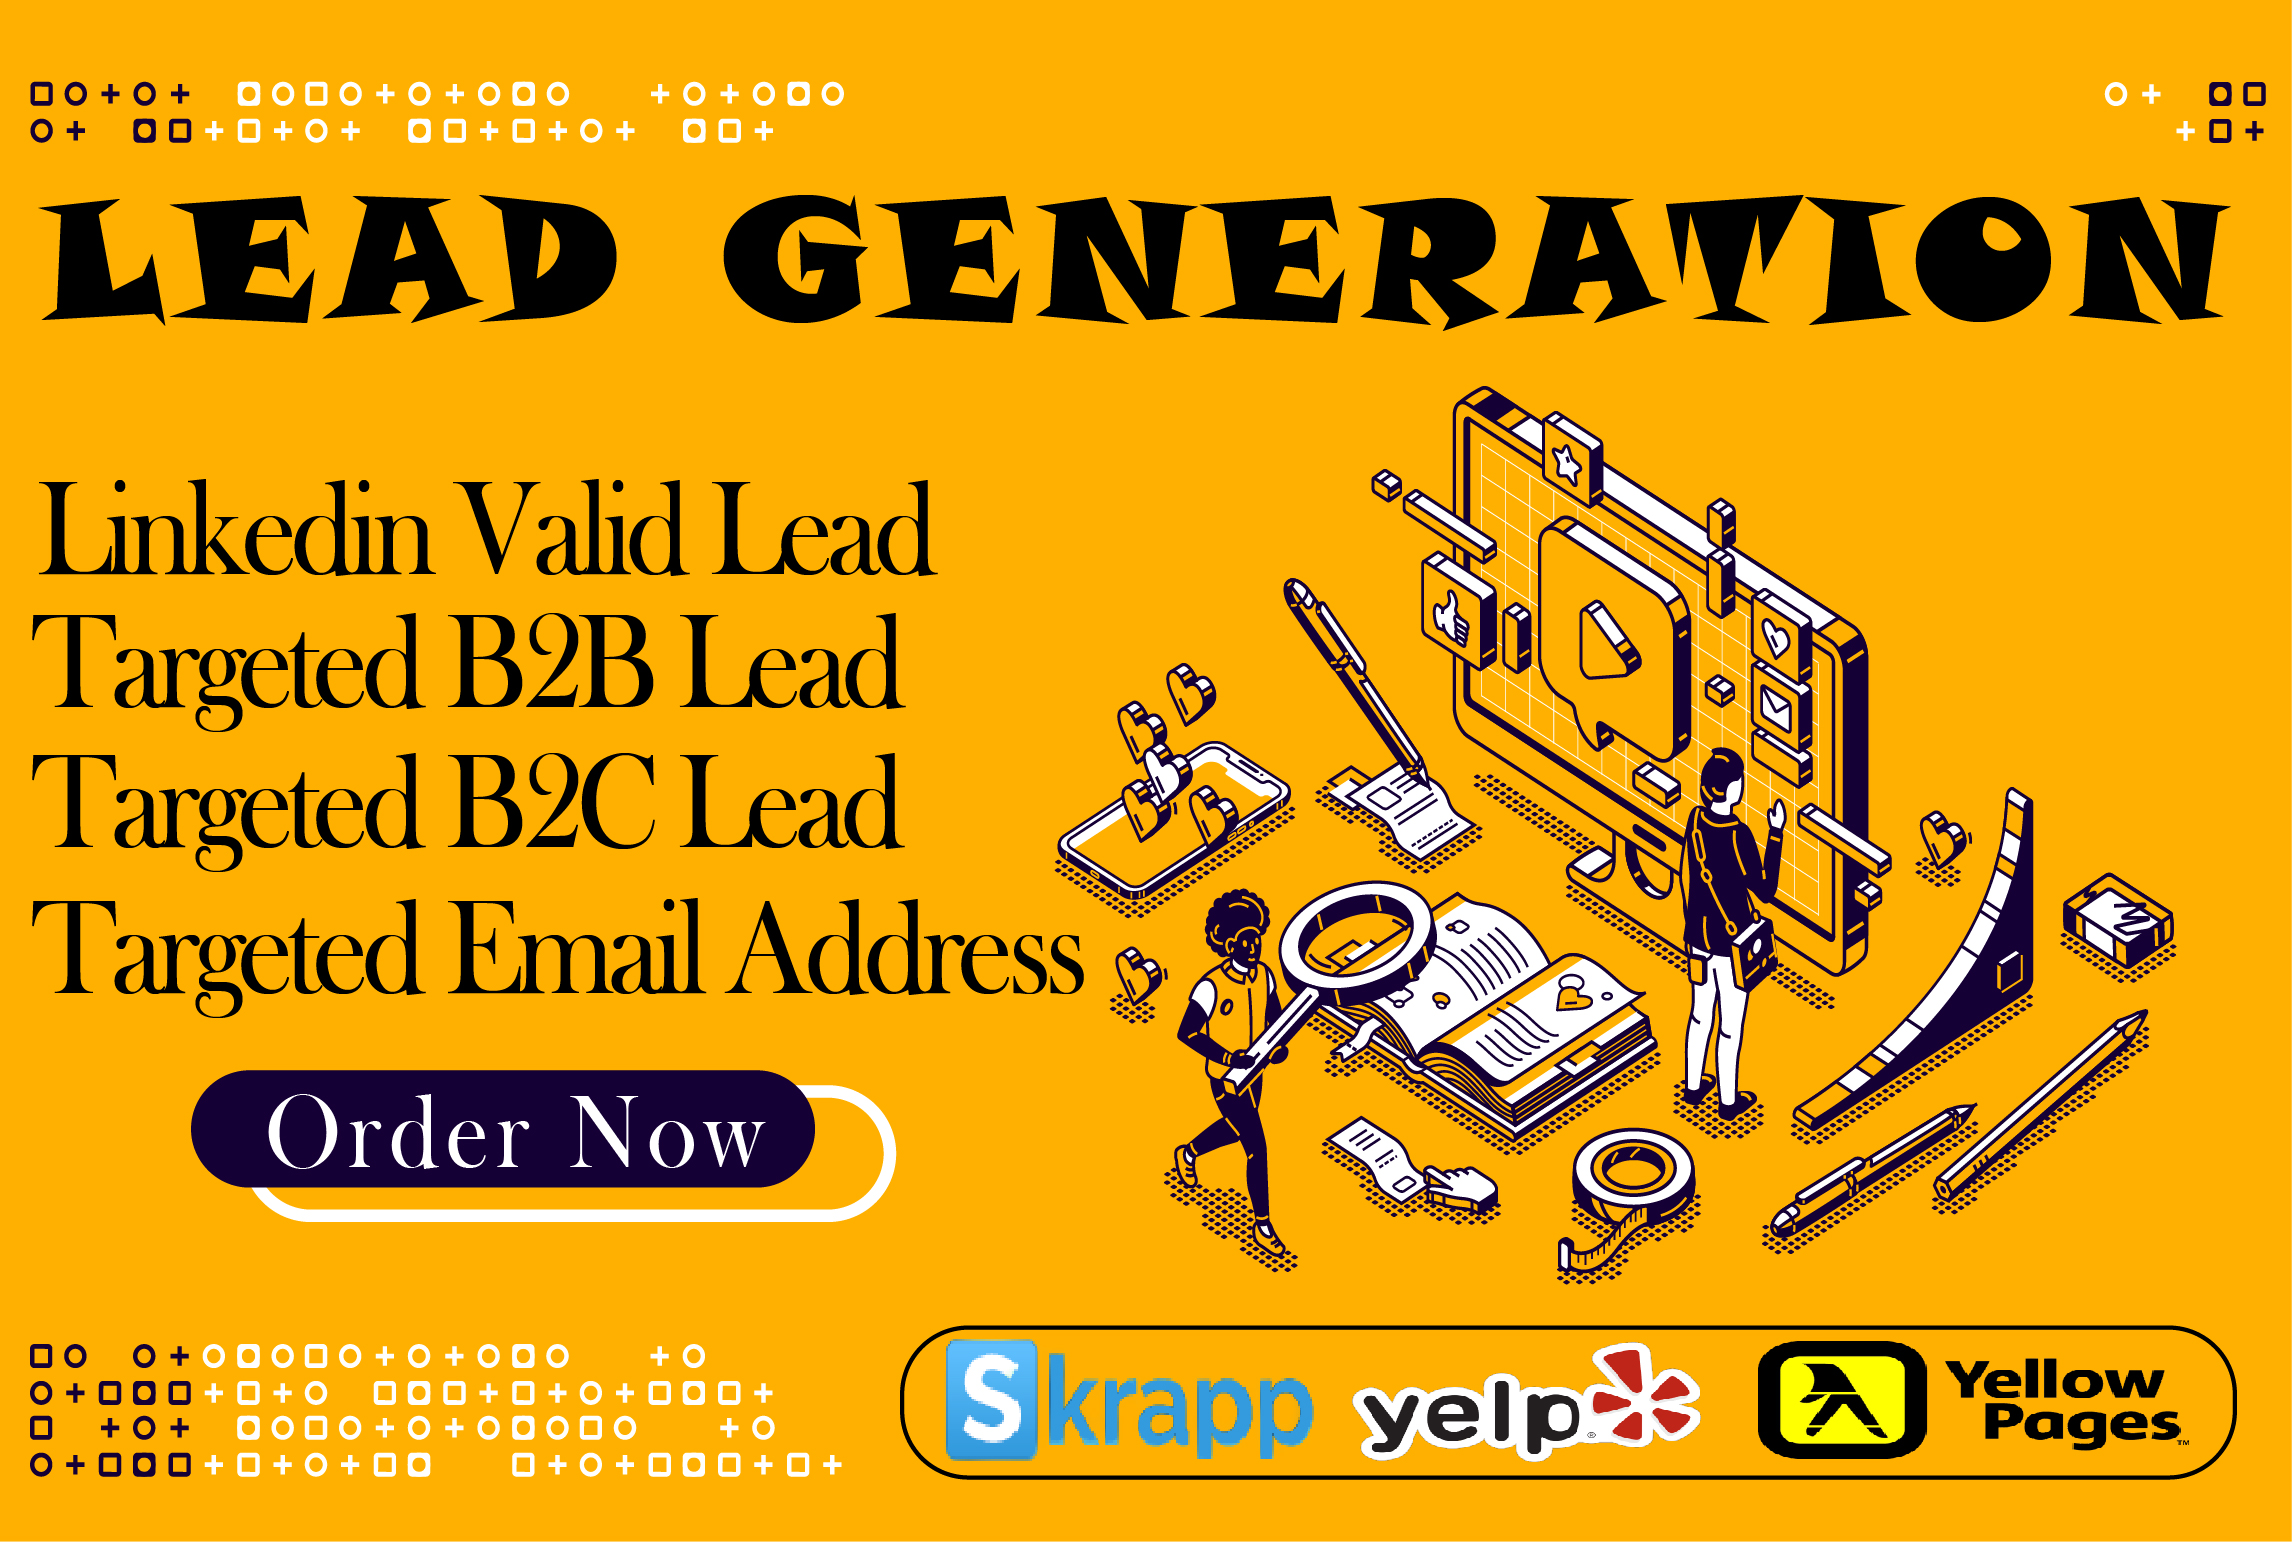 I will do Lead Generation for your business